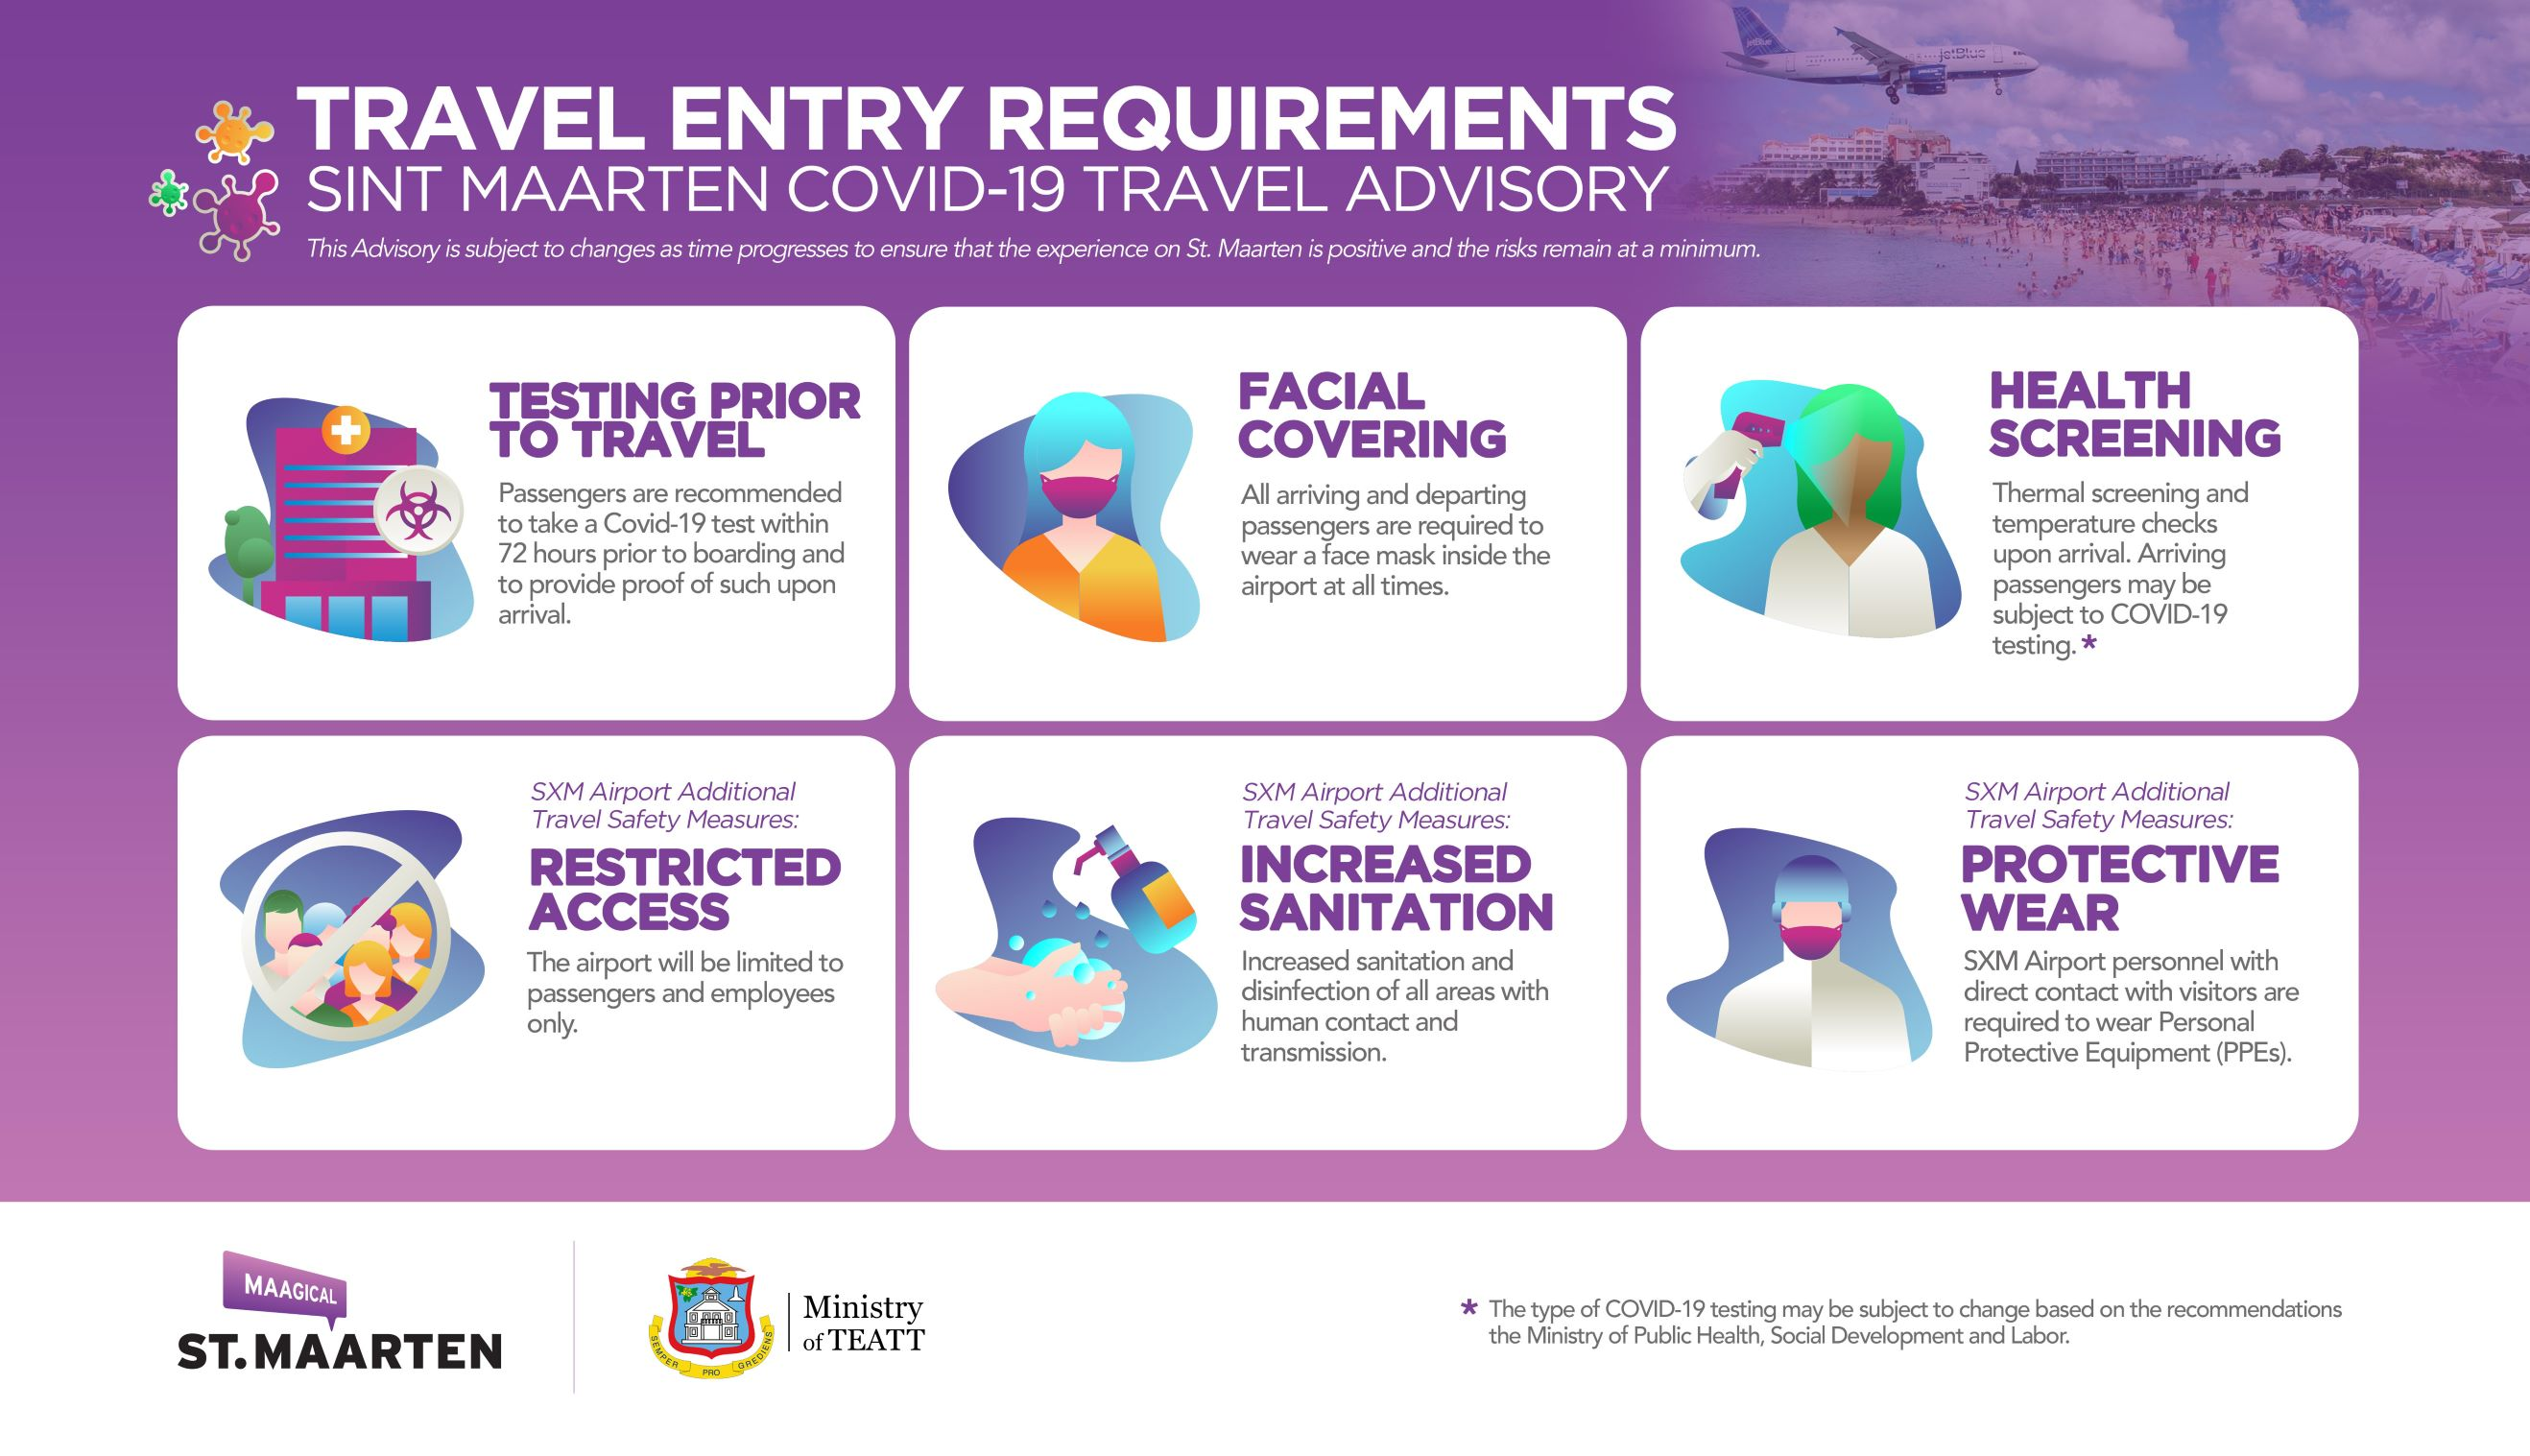 Travel Entry Requirements for St. Maarten